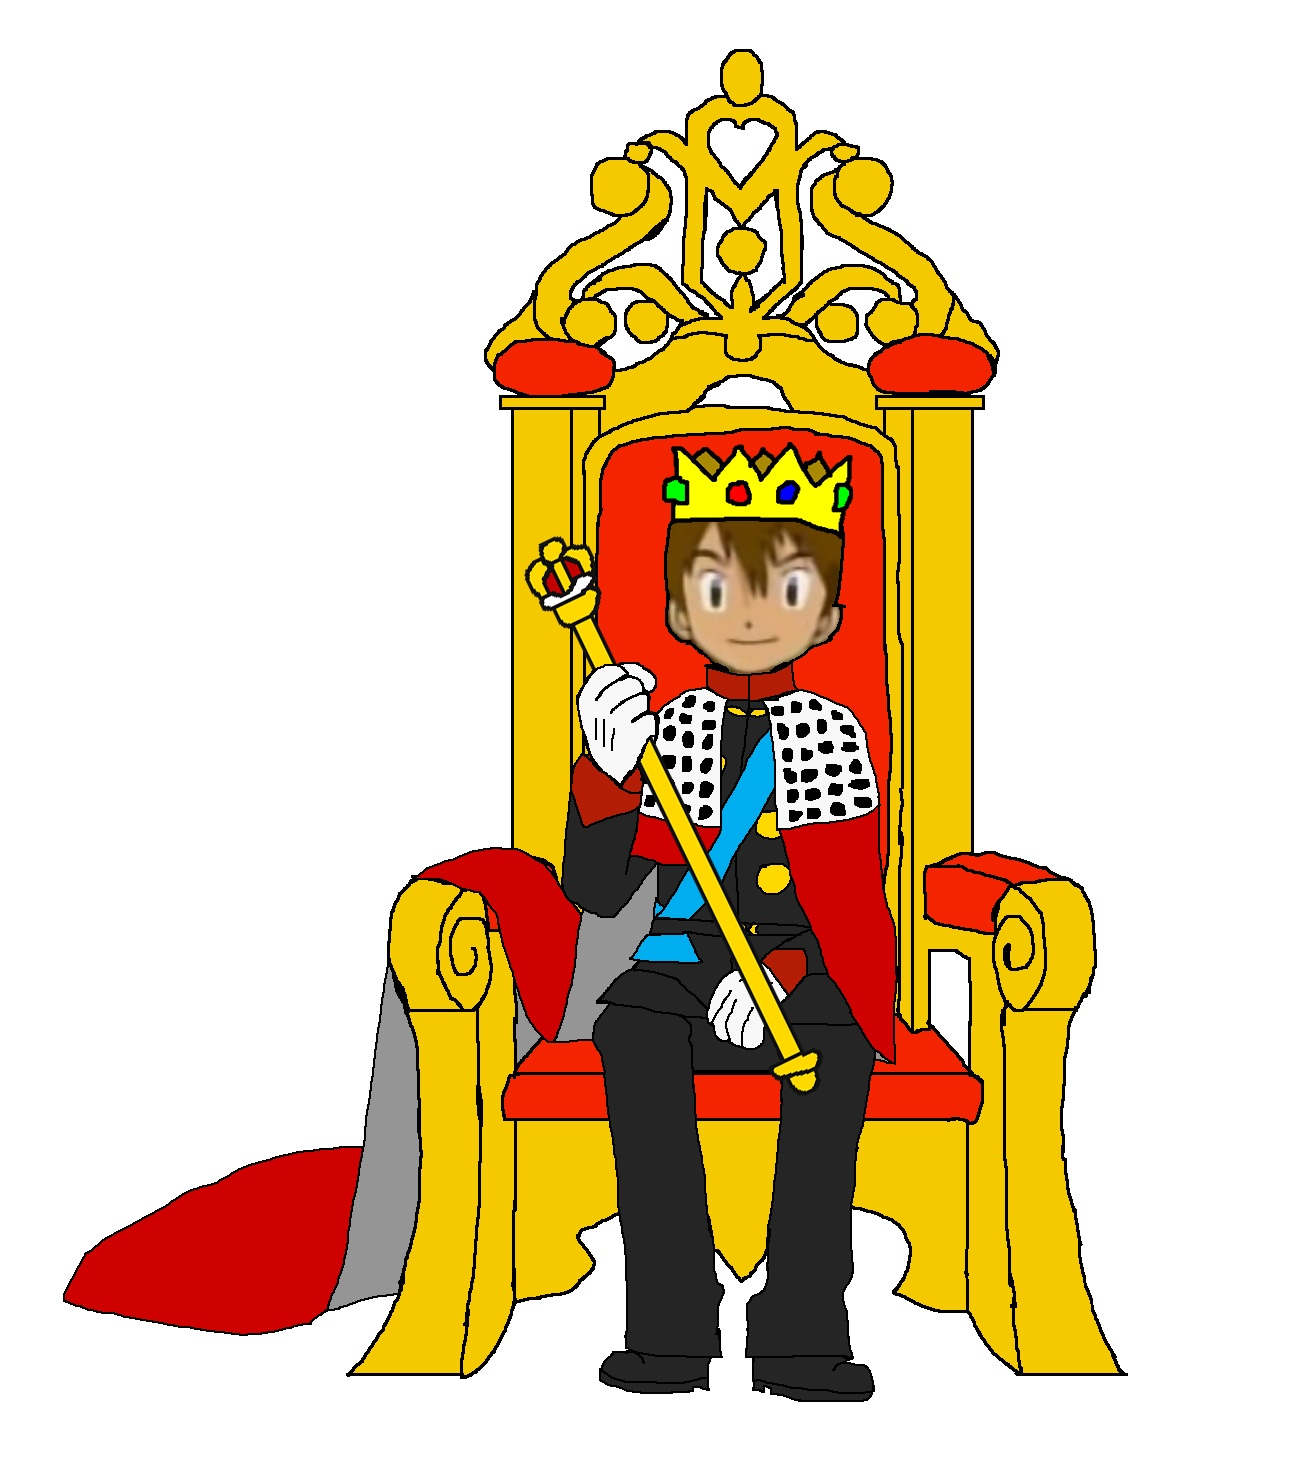 King clipart png banner freeuse King Sitting in Throne Clip Art – Clipart Free Download banner freeuse